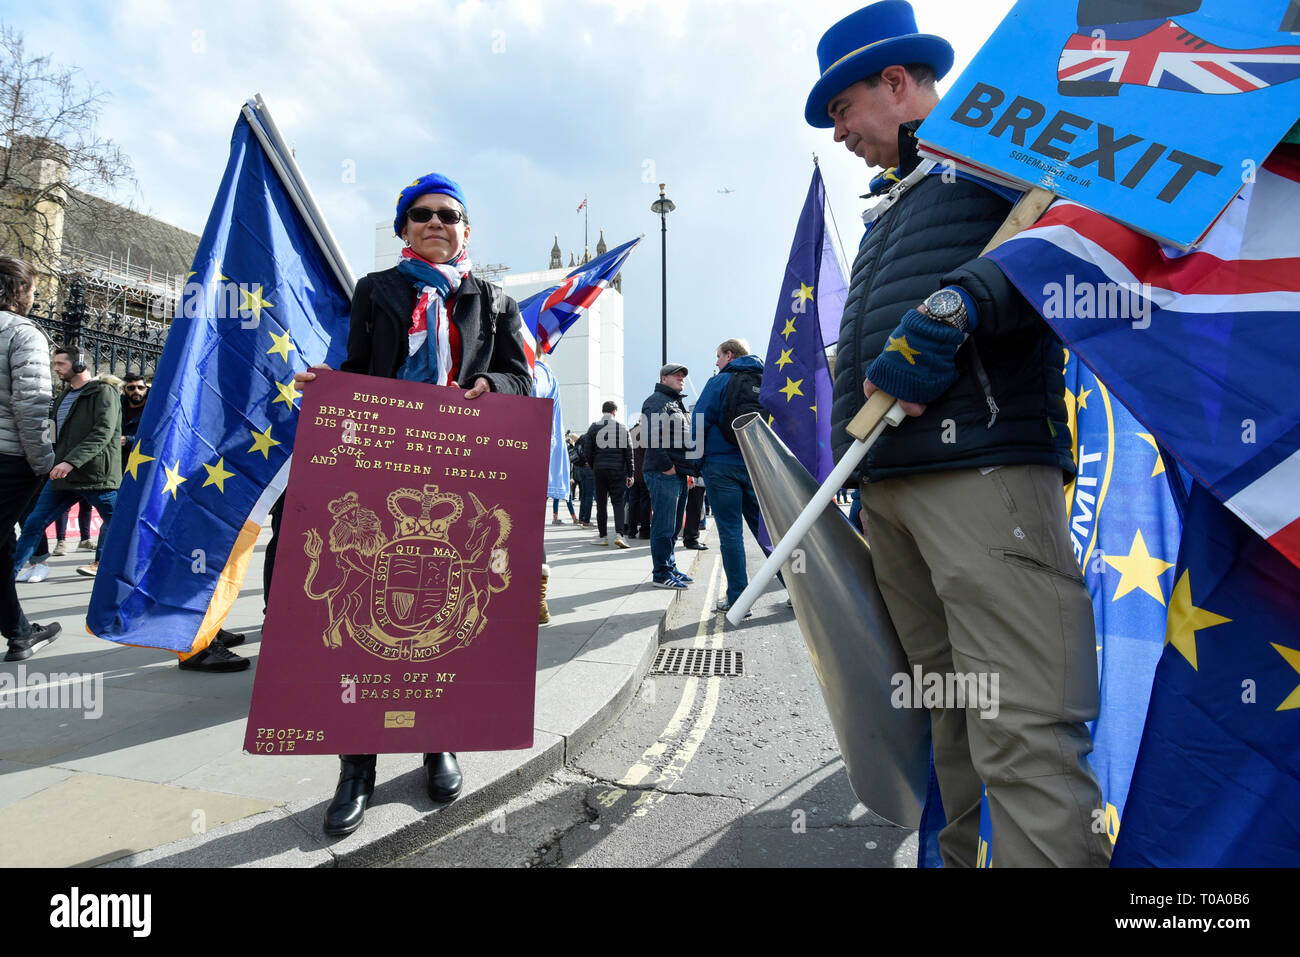 London, UK. 18th Mar, 2019. Remain protesters outside the Houses of Parliament. Theresa May, Prime Minister, is considering requesting the European Union for a long delay to article 50 if she determines that MPs will reject her Brexit deal in a meaningful vote for a third time. Credit: Stephen Chung/Alamy Live News - Stock Image